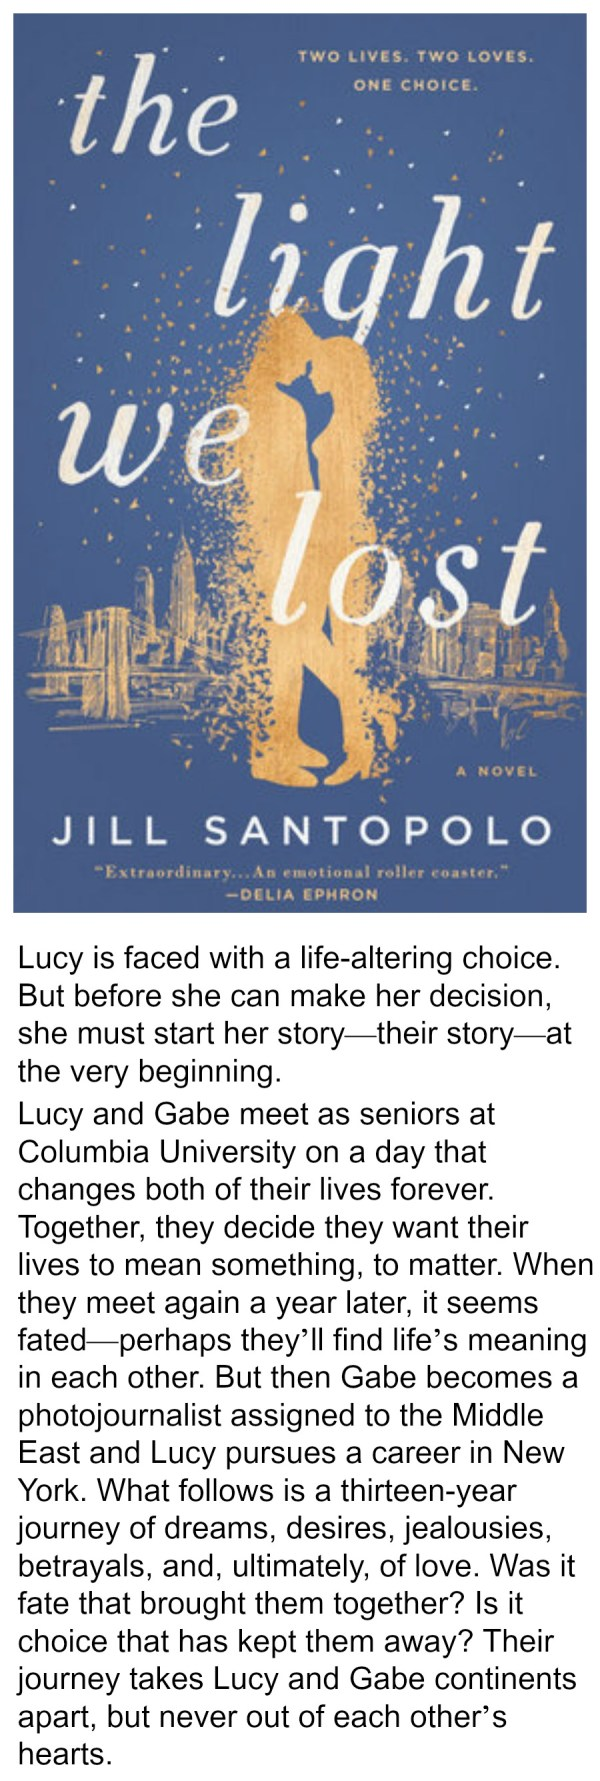 The Light We Lost, Jill Santopolo, summer reading, best books of 2017, summer reading 2017, love story, fiction